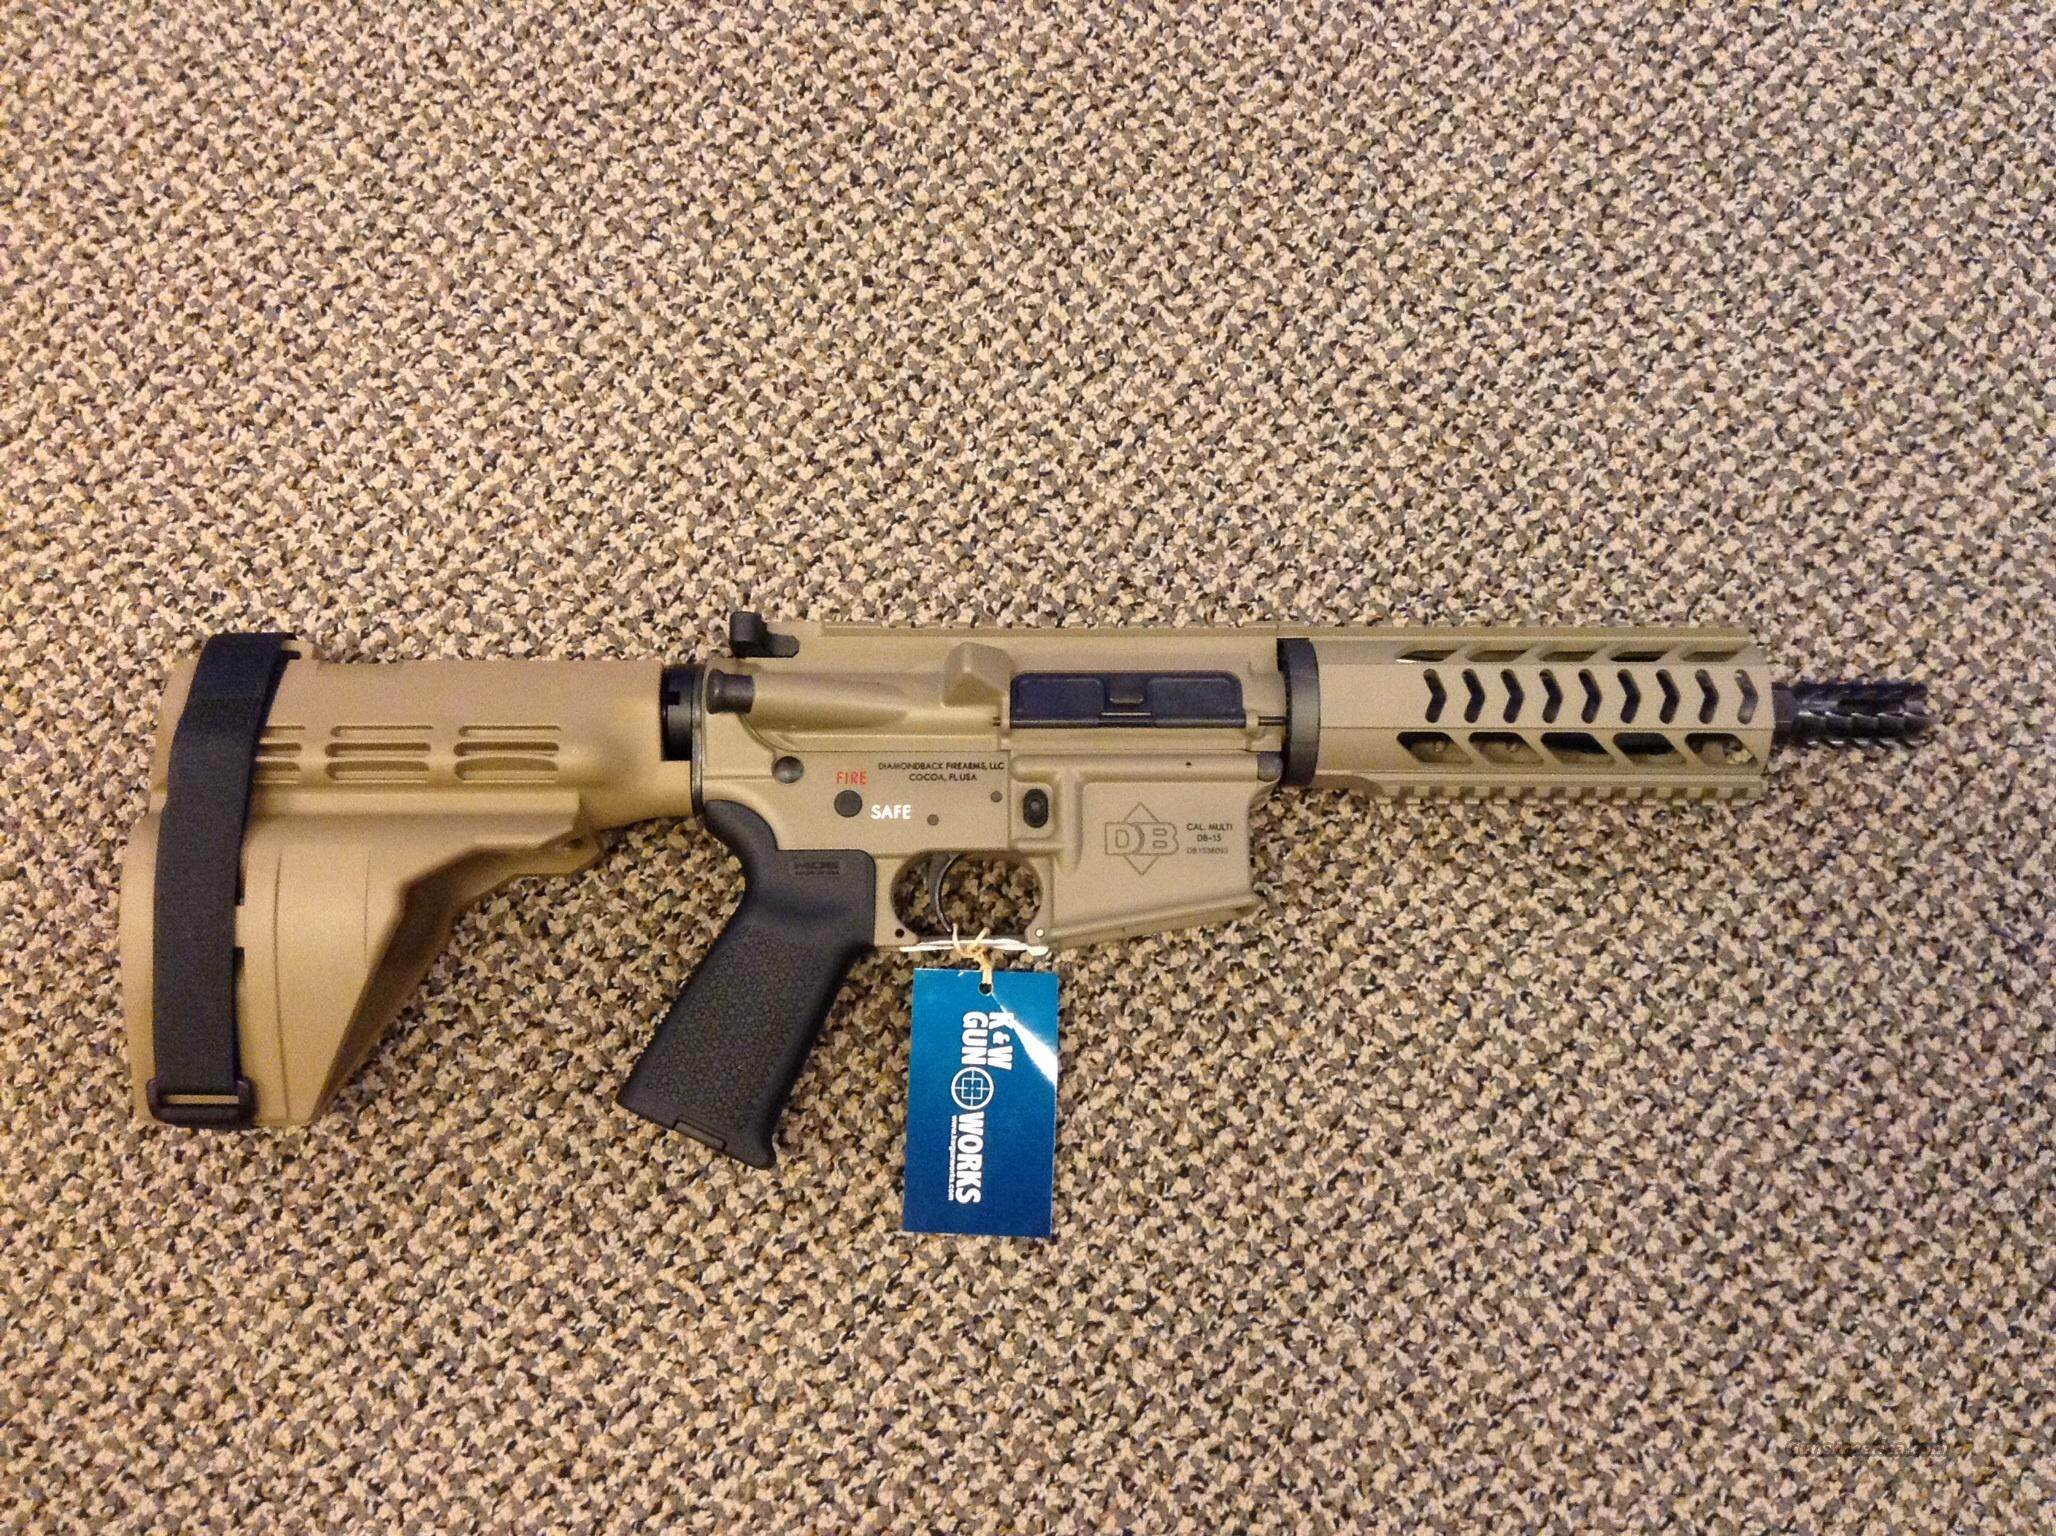 DIAMONDBACK DB-15 PISTOL FDE WITH SIGTAC STABILIZING BRACE NEW IN BOX   Guns > Pistols > Diamondback Pistols